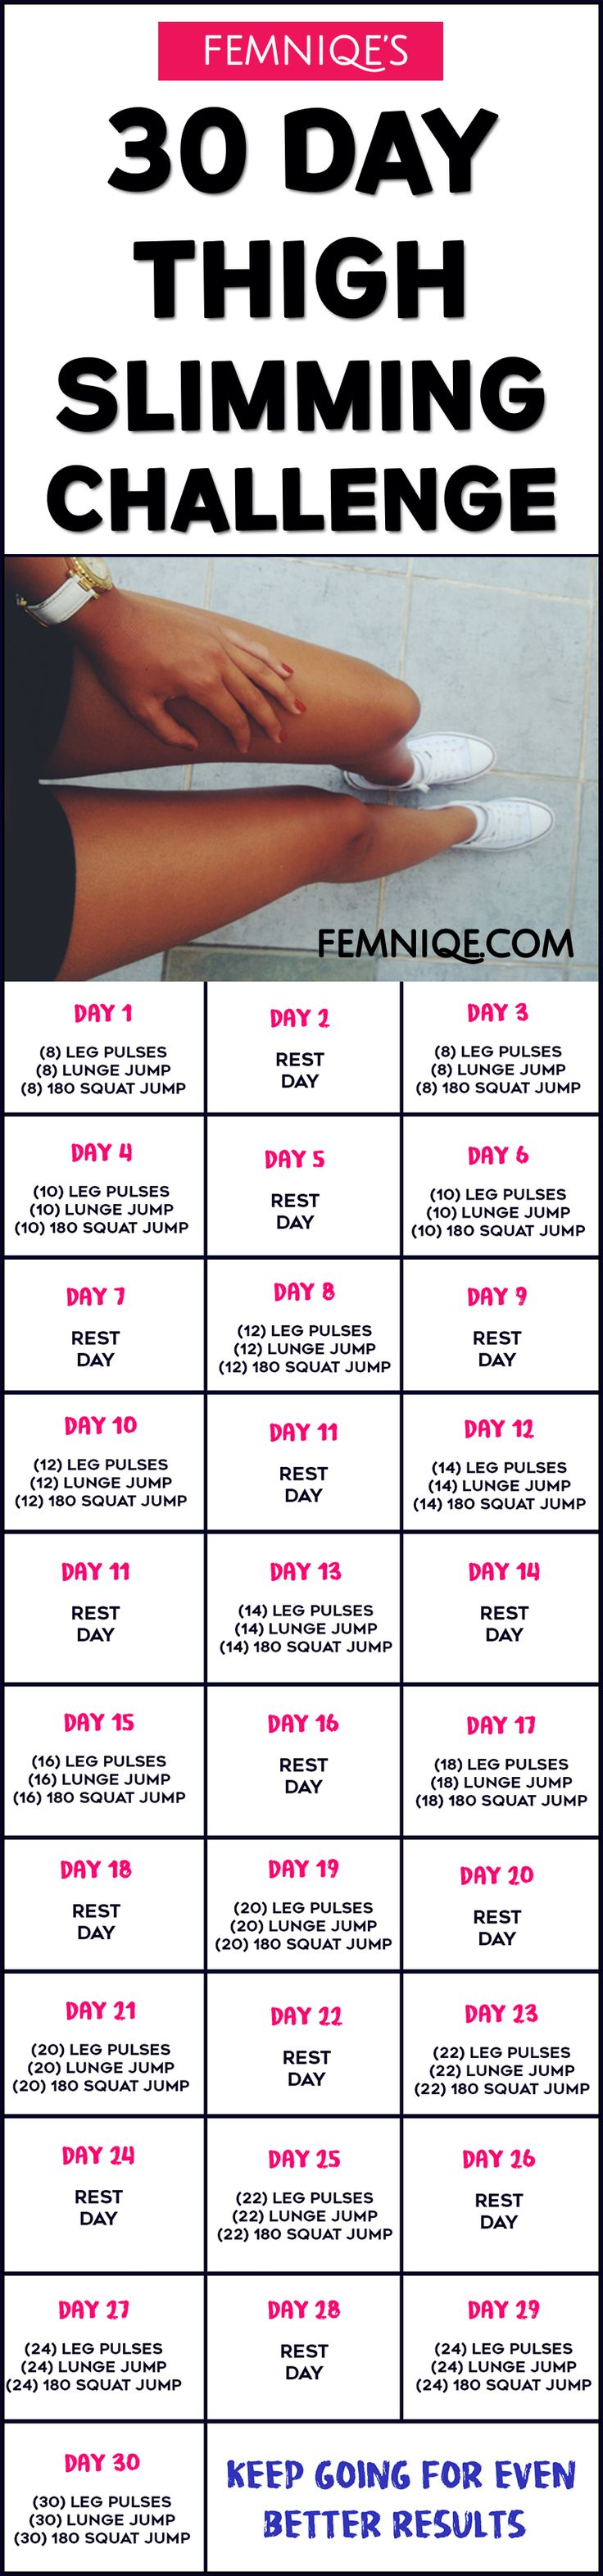 30 Day Thigh Slimming Challenge - If you want to know How To Lose Thigh Fat in 1 month then you should do this challenge- In this guide you will get the exact steps with targeted thigh workouts that w